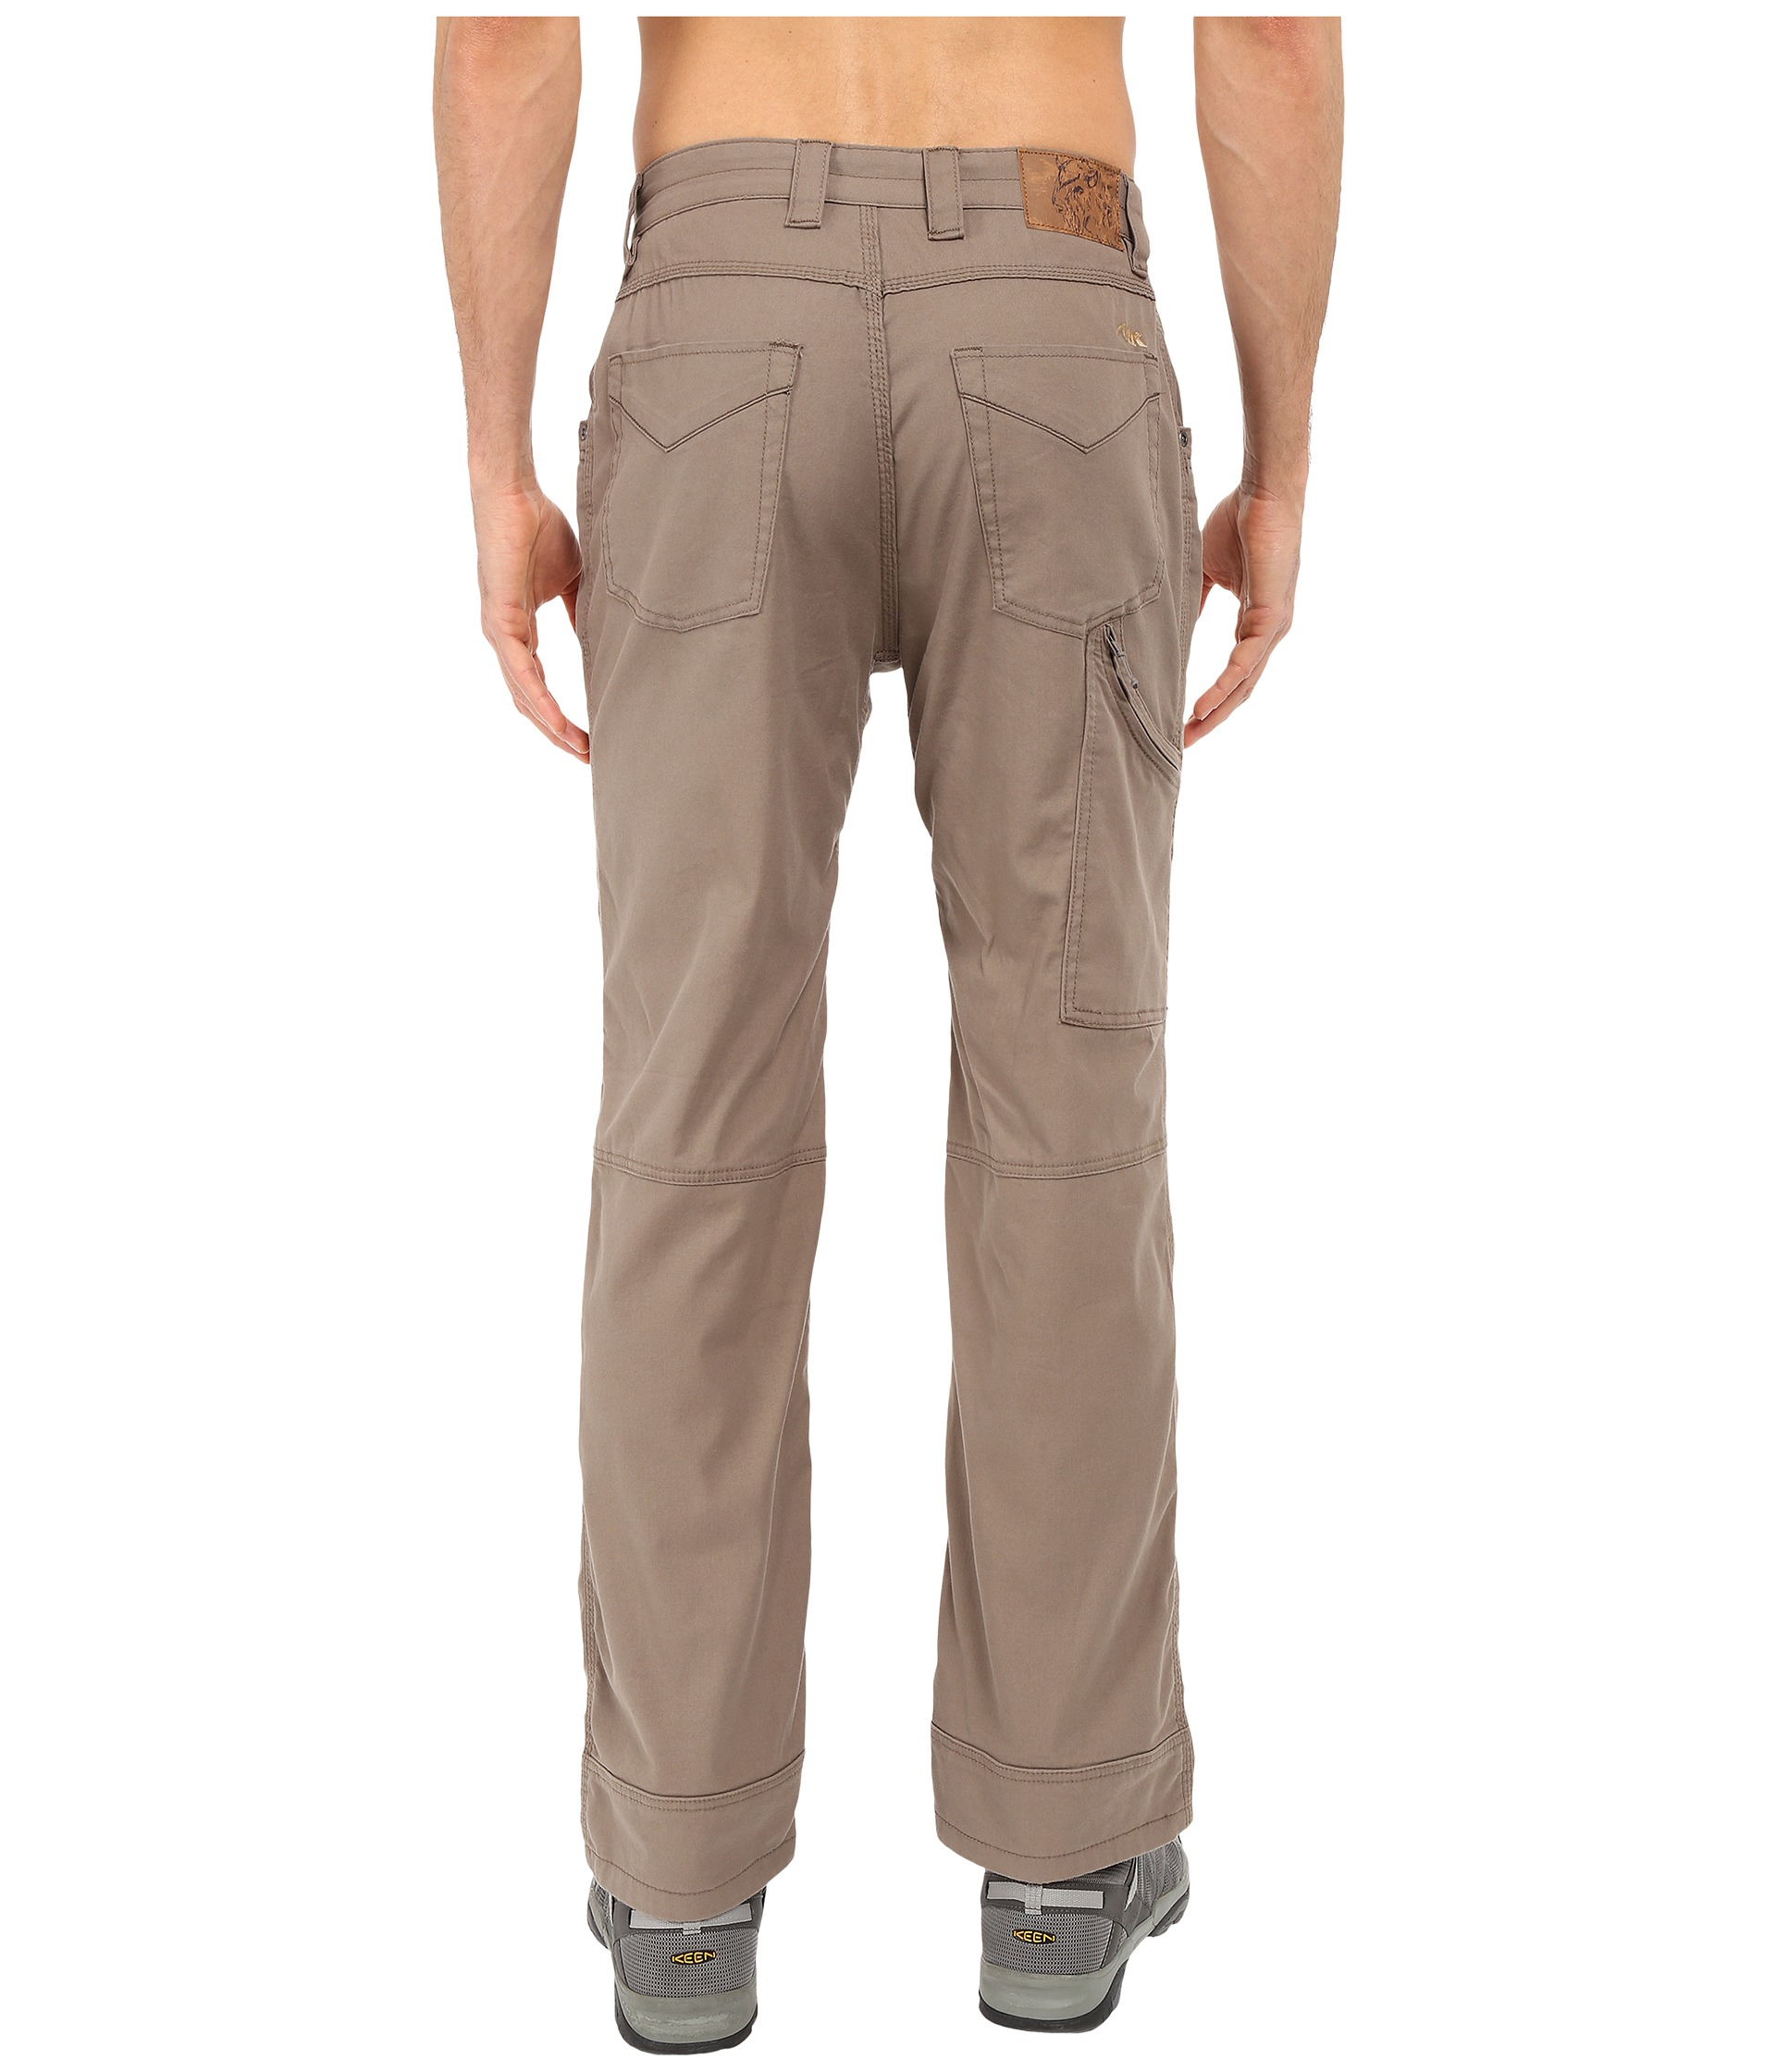 Shop Mountain Khakis for men's and women's premium outdoor apparel and gear built for fishing, hiking, the office or happy hour.